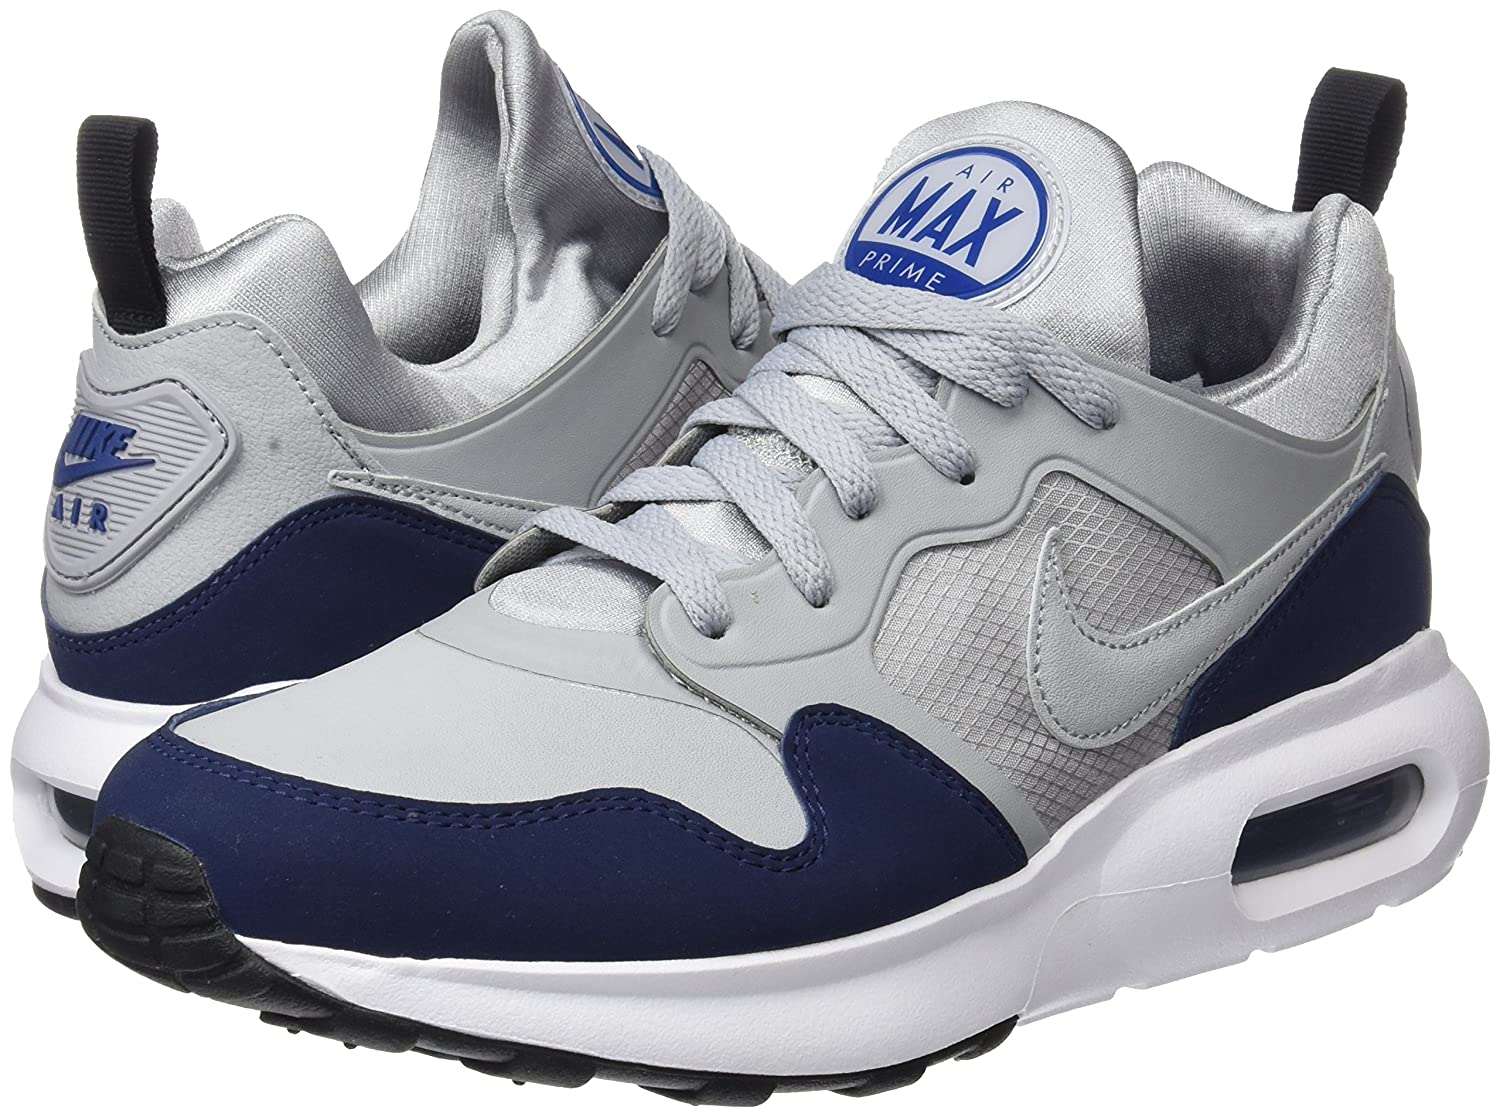 Buy Nike Air Max Prime Sl Mens Style : 876069 003 Size : 10